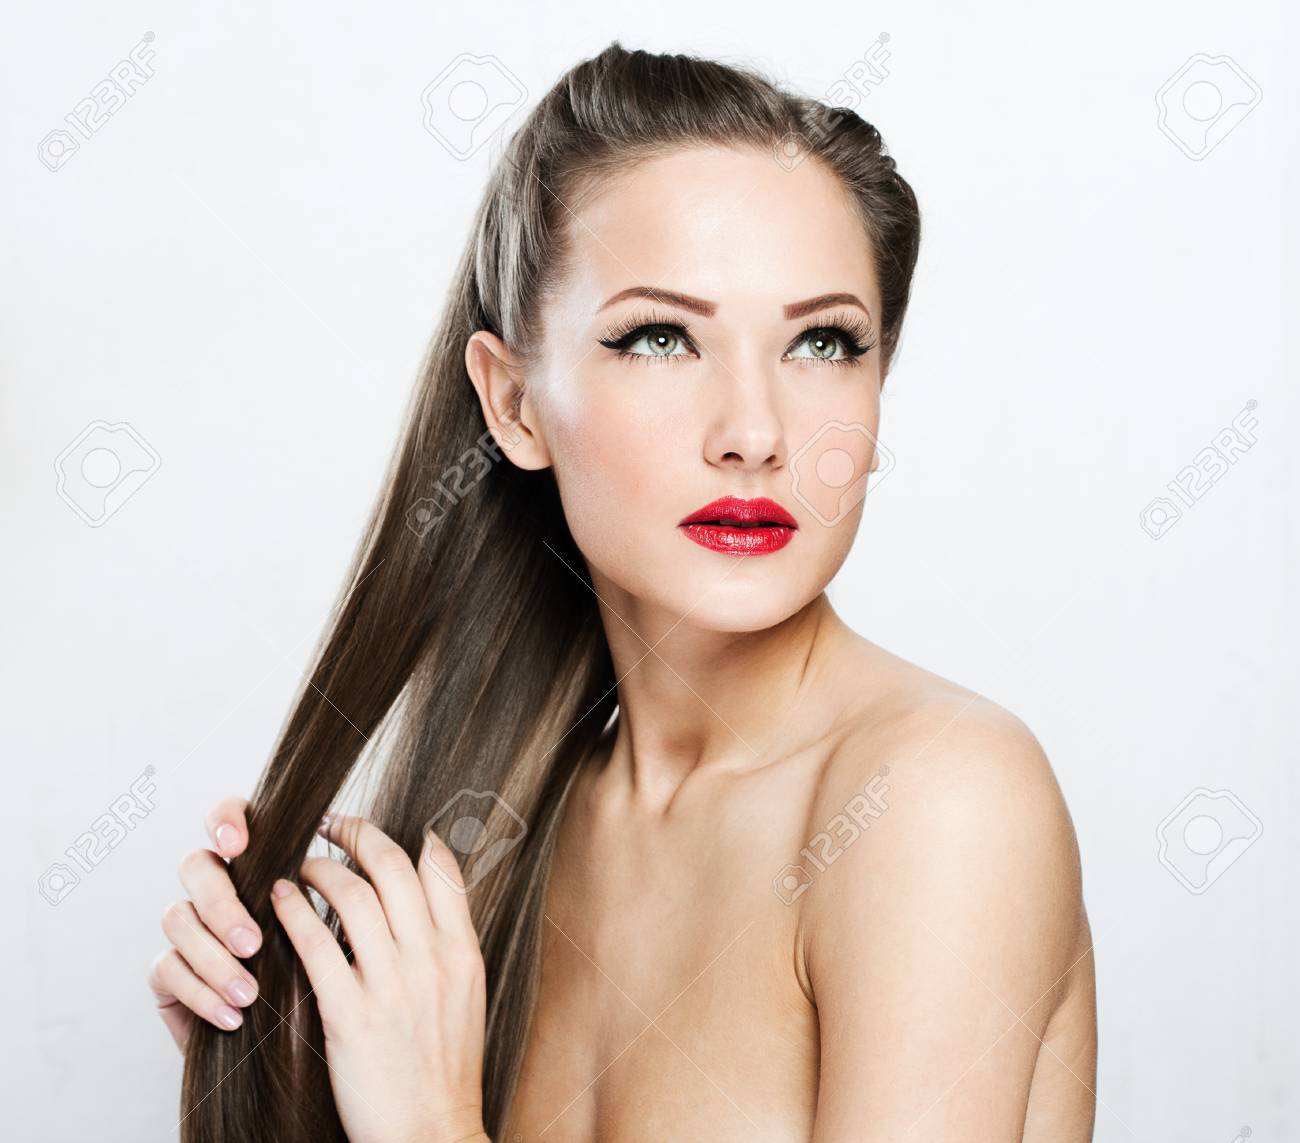 Beautiful Woman with Healthy Long Hair Stock Photo - 17751750